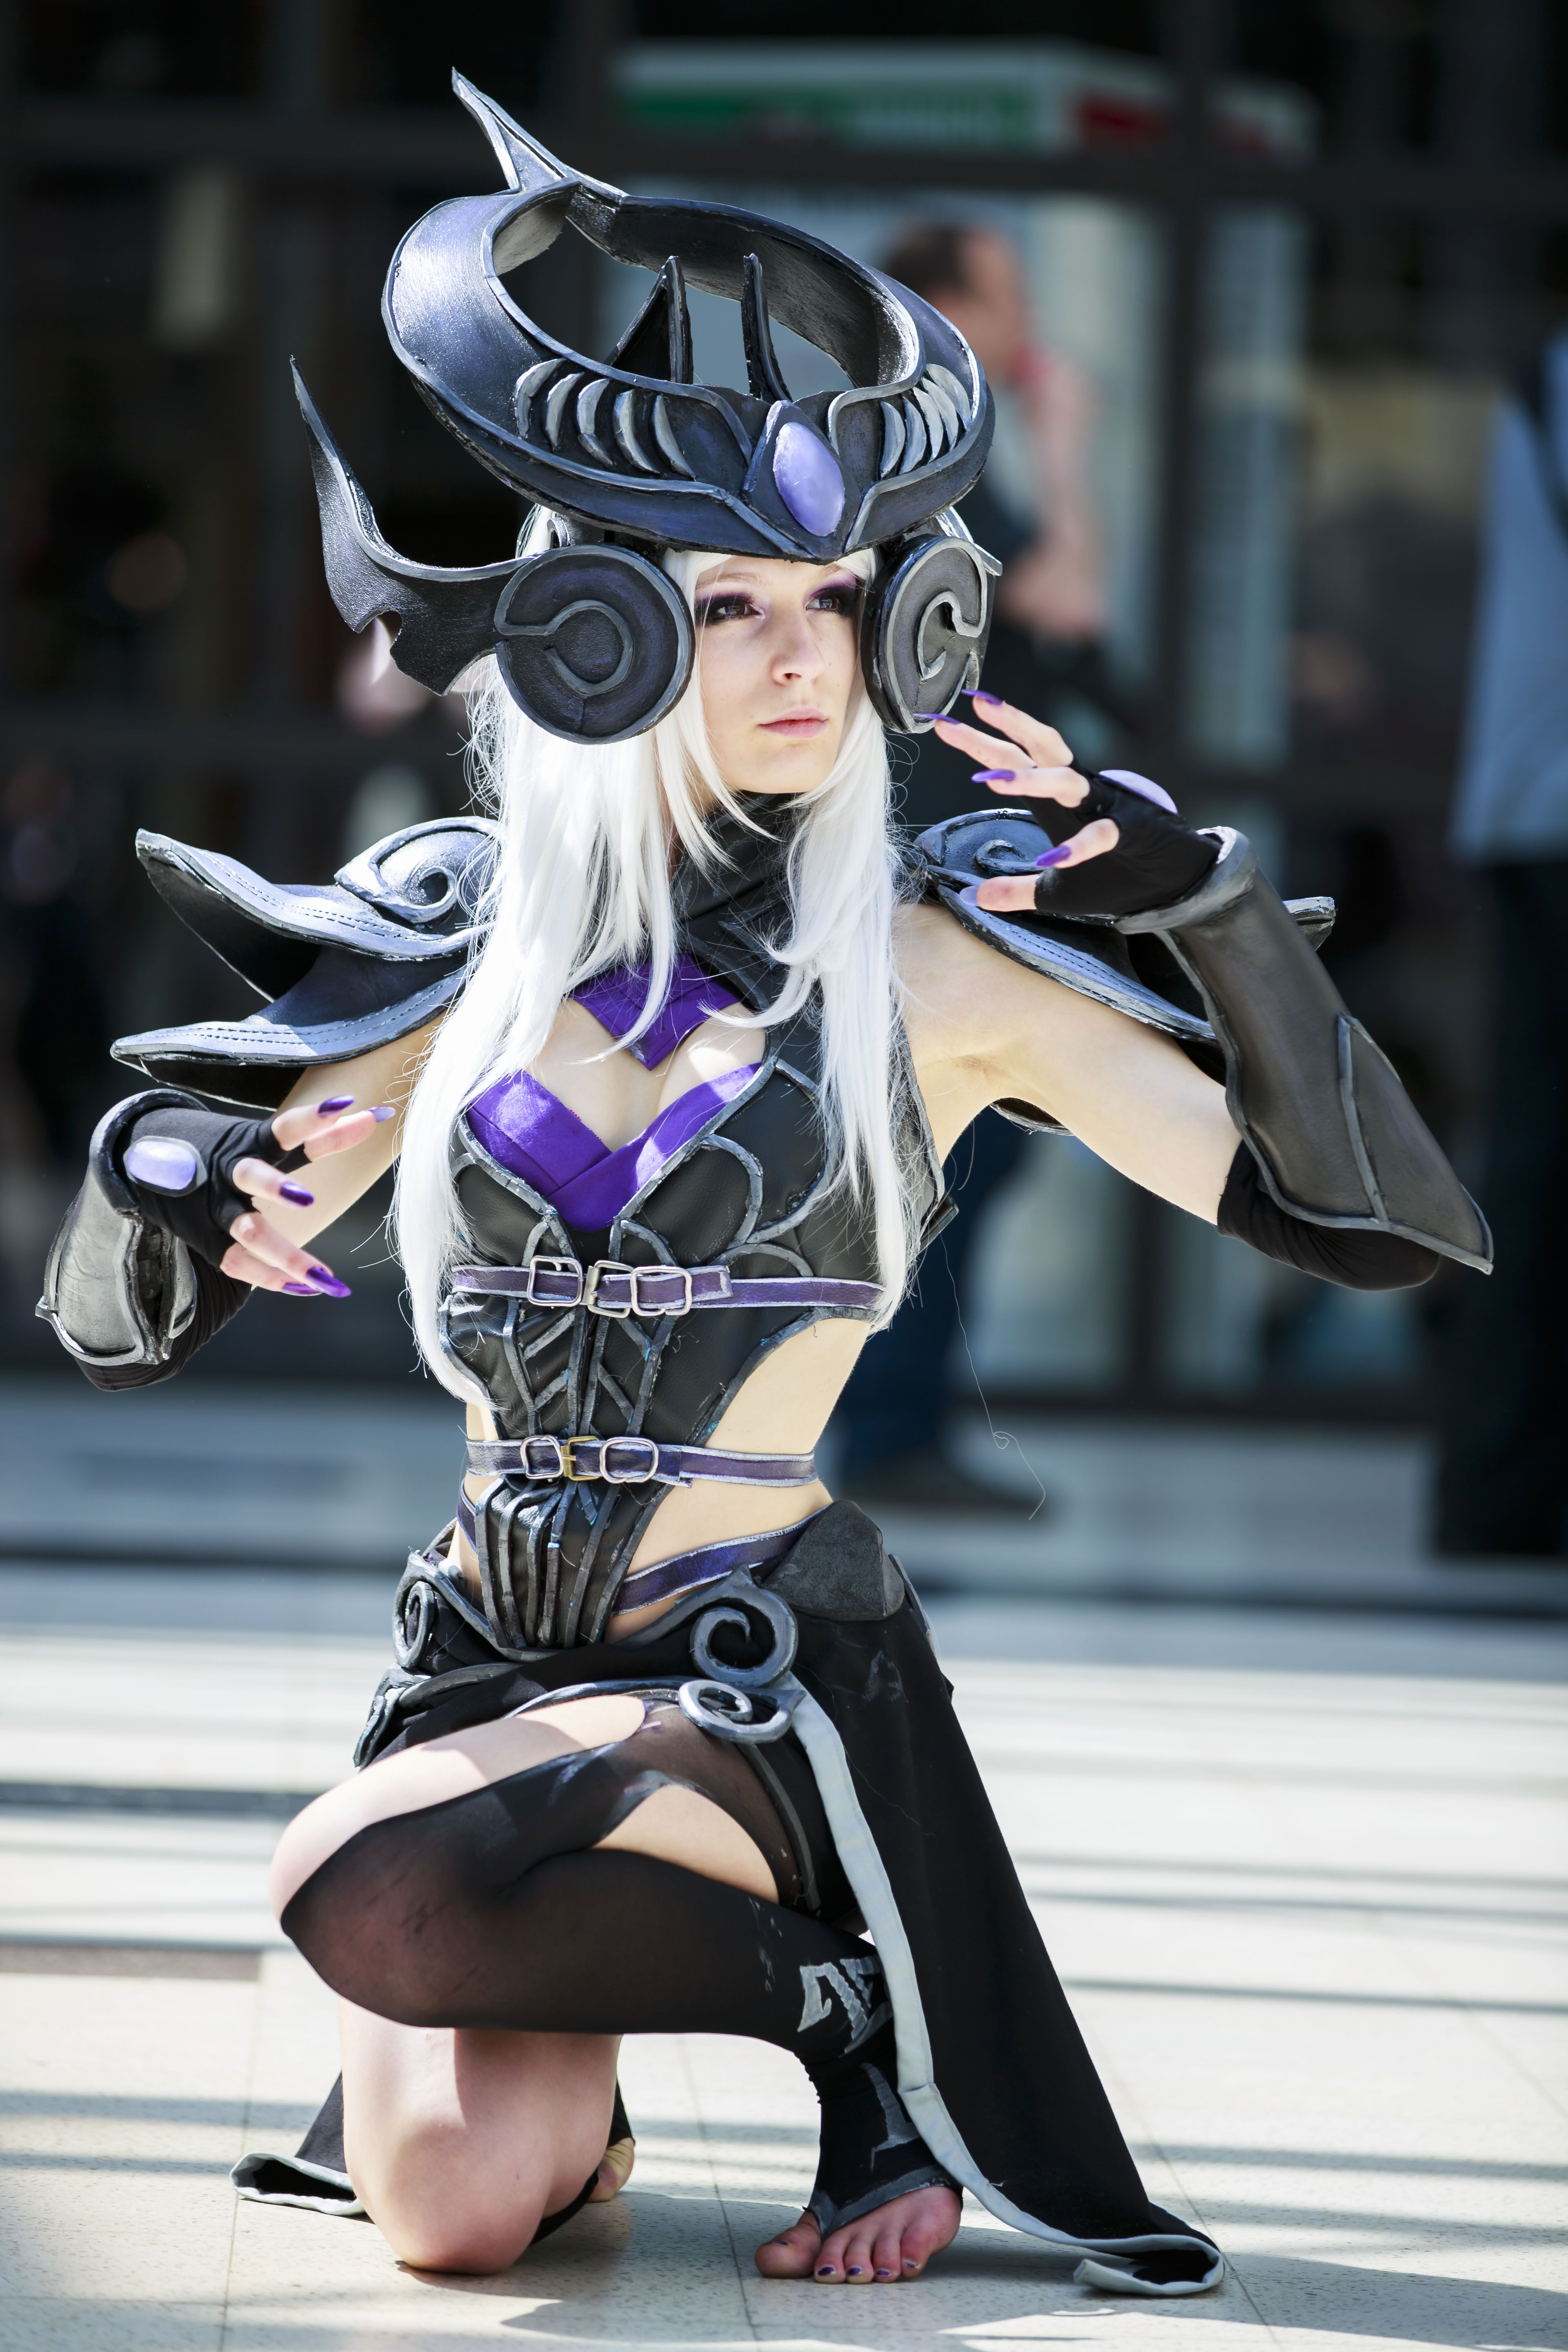 League of legends costumes male